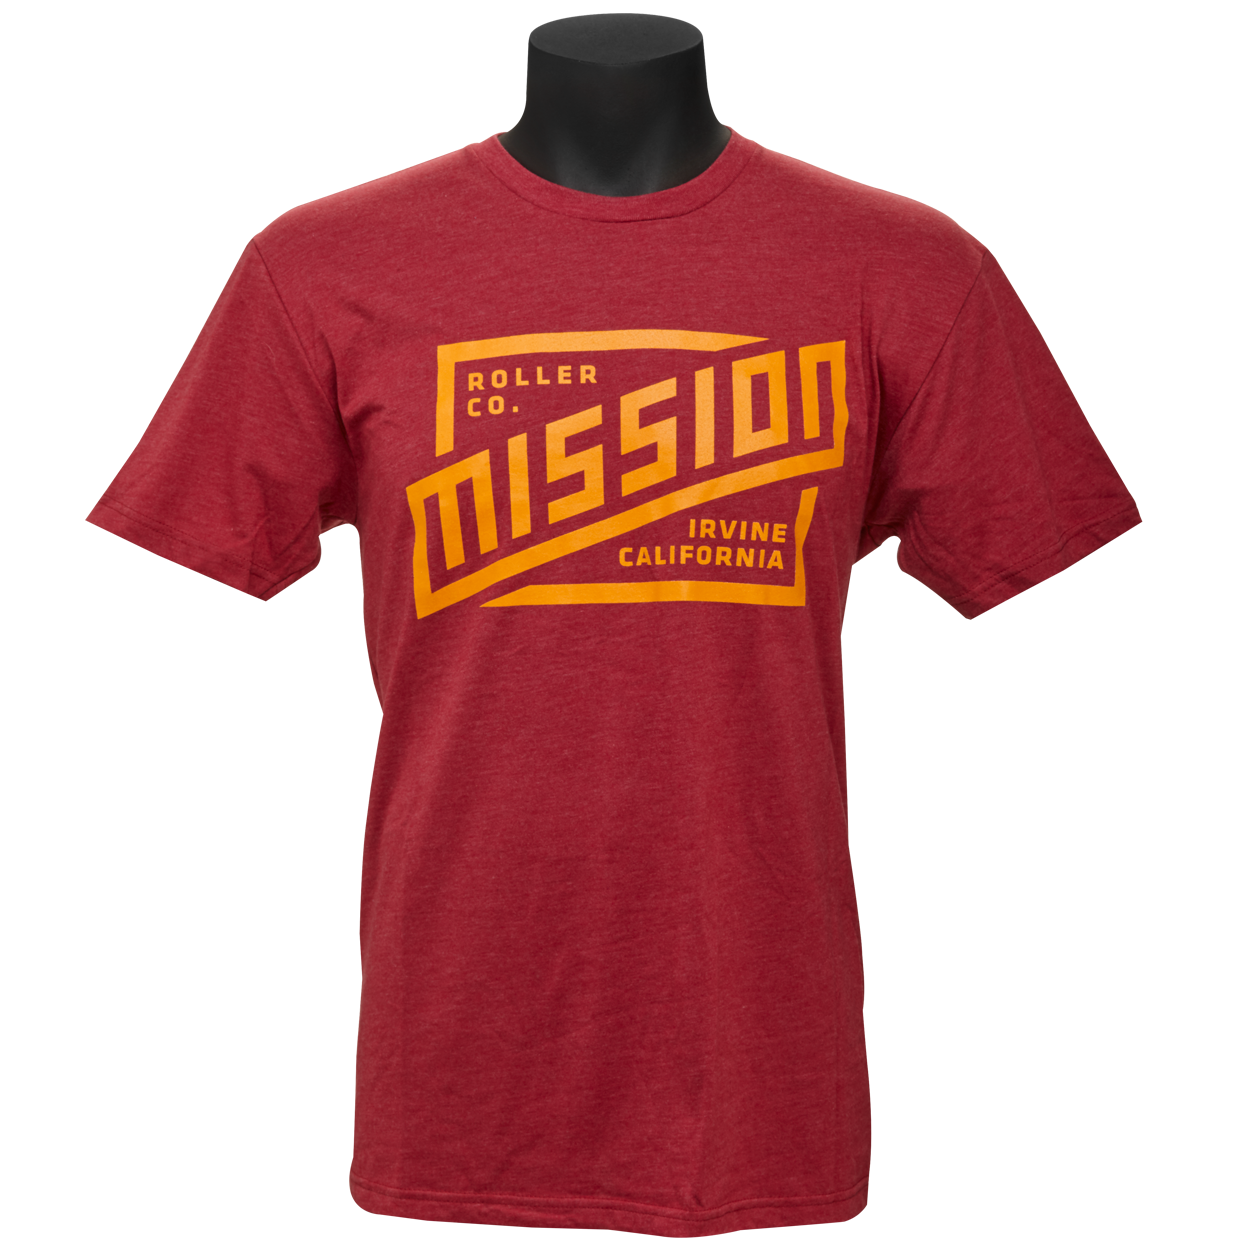 MISSION Lincoln T-Shirt Senior,,Medium